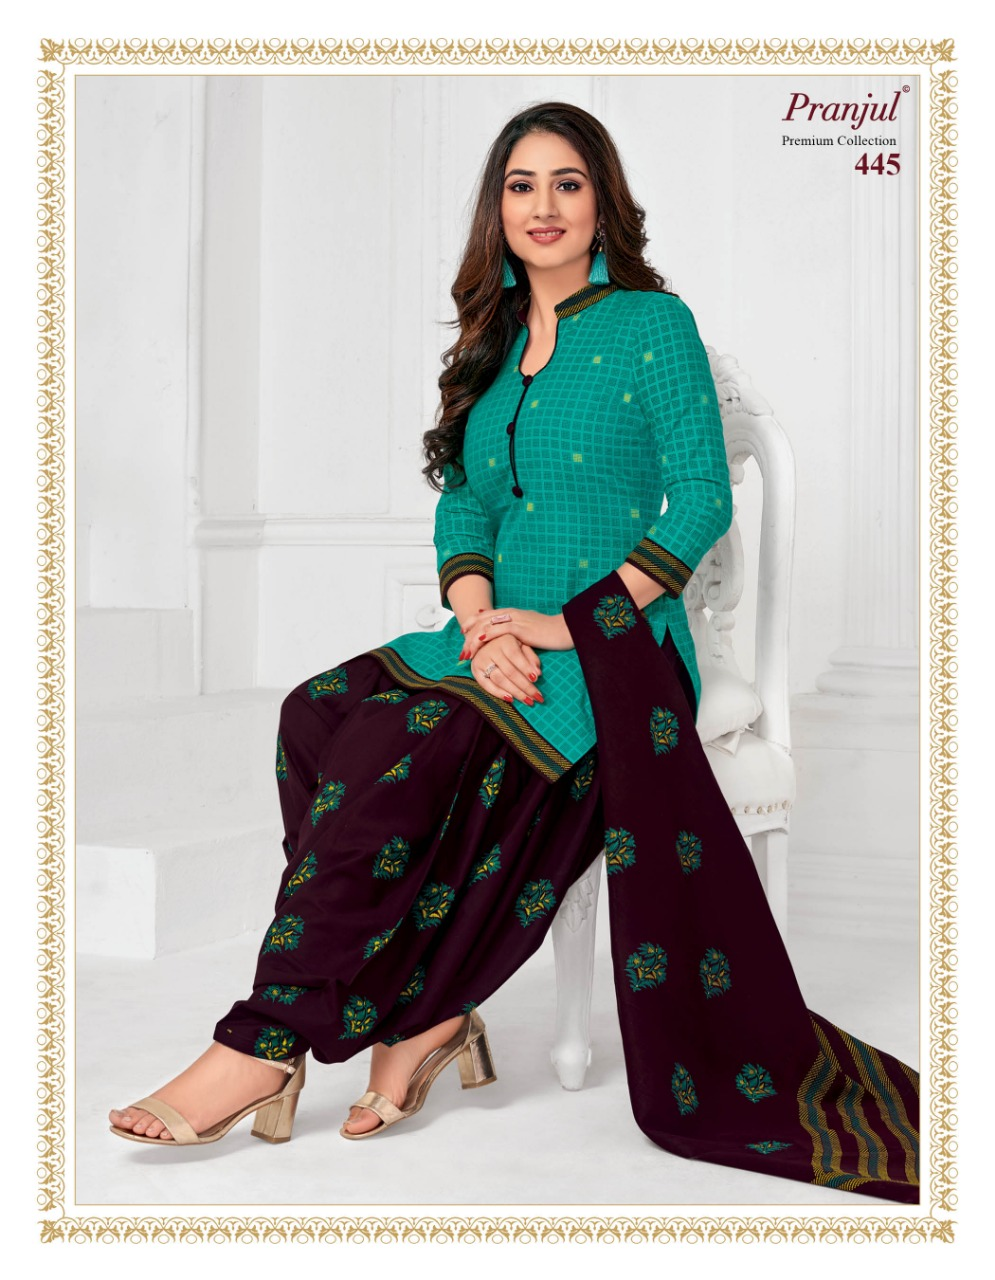 Pranjul Priyanka Vol 4 B Readymade Suit Wholesale Catalog 15 Pcs 17 - Pranjul Priyanka Vol 4 B Readymade Suit Wholesale Catalog 15 Pcs